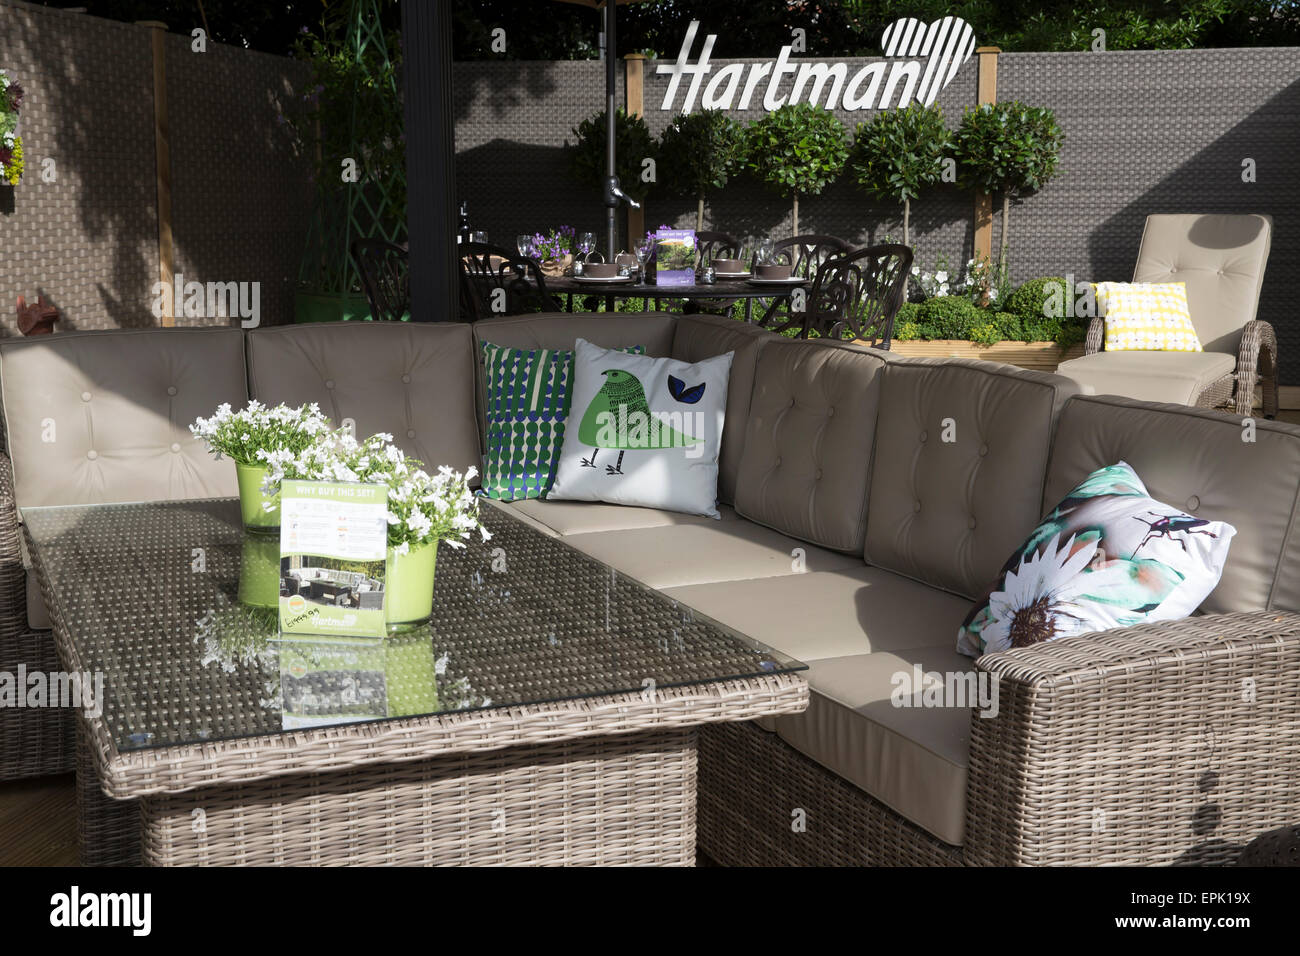 Chelsea london uk 19th may 2015 hartman garden furniture for sale at chelsea flower show 2015 credit keith larby alamy live news